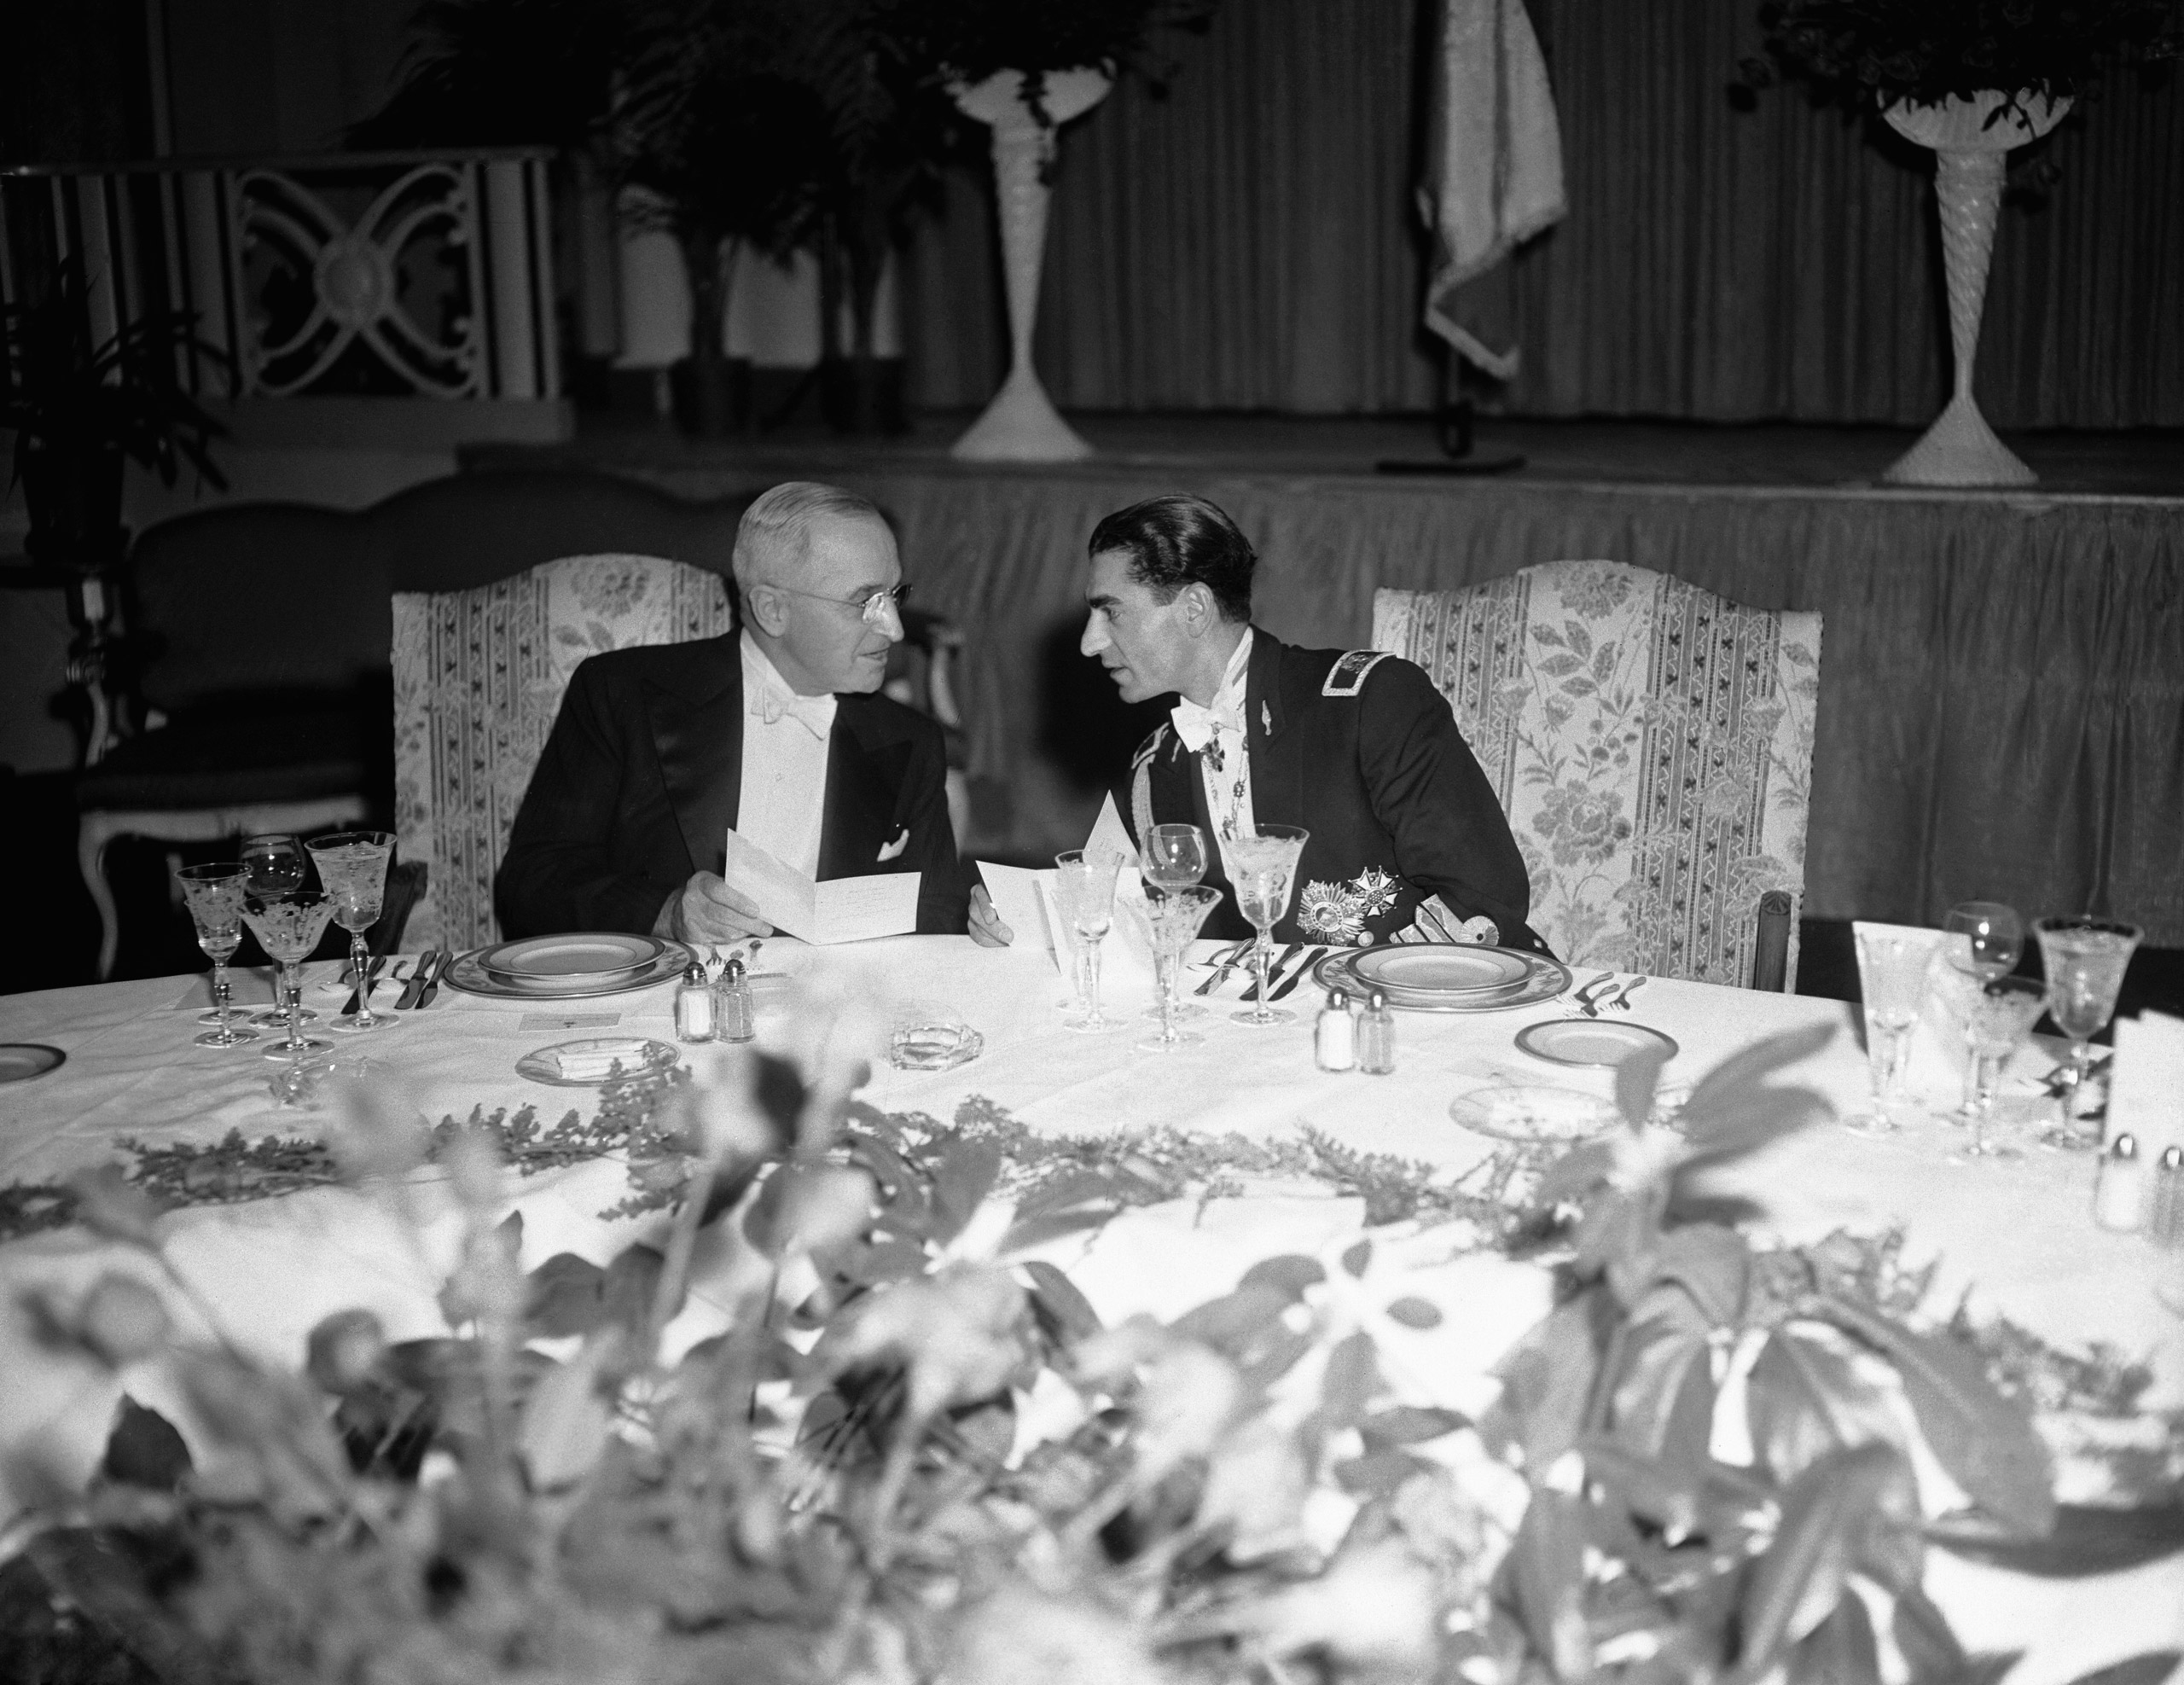 President Harry Truman and the Shah of Iran, Mohammed Reza Pahlavi, at the official dinner given by the visiting ruler at the Shoreham Hotel. Washington D.C., Nov. 19, 1949.